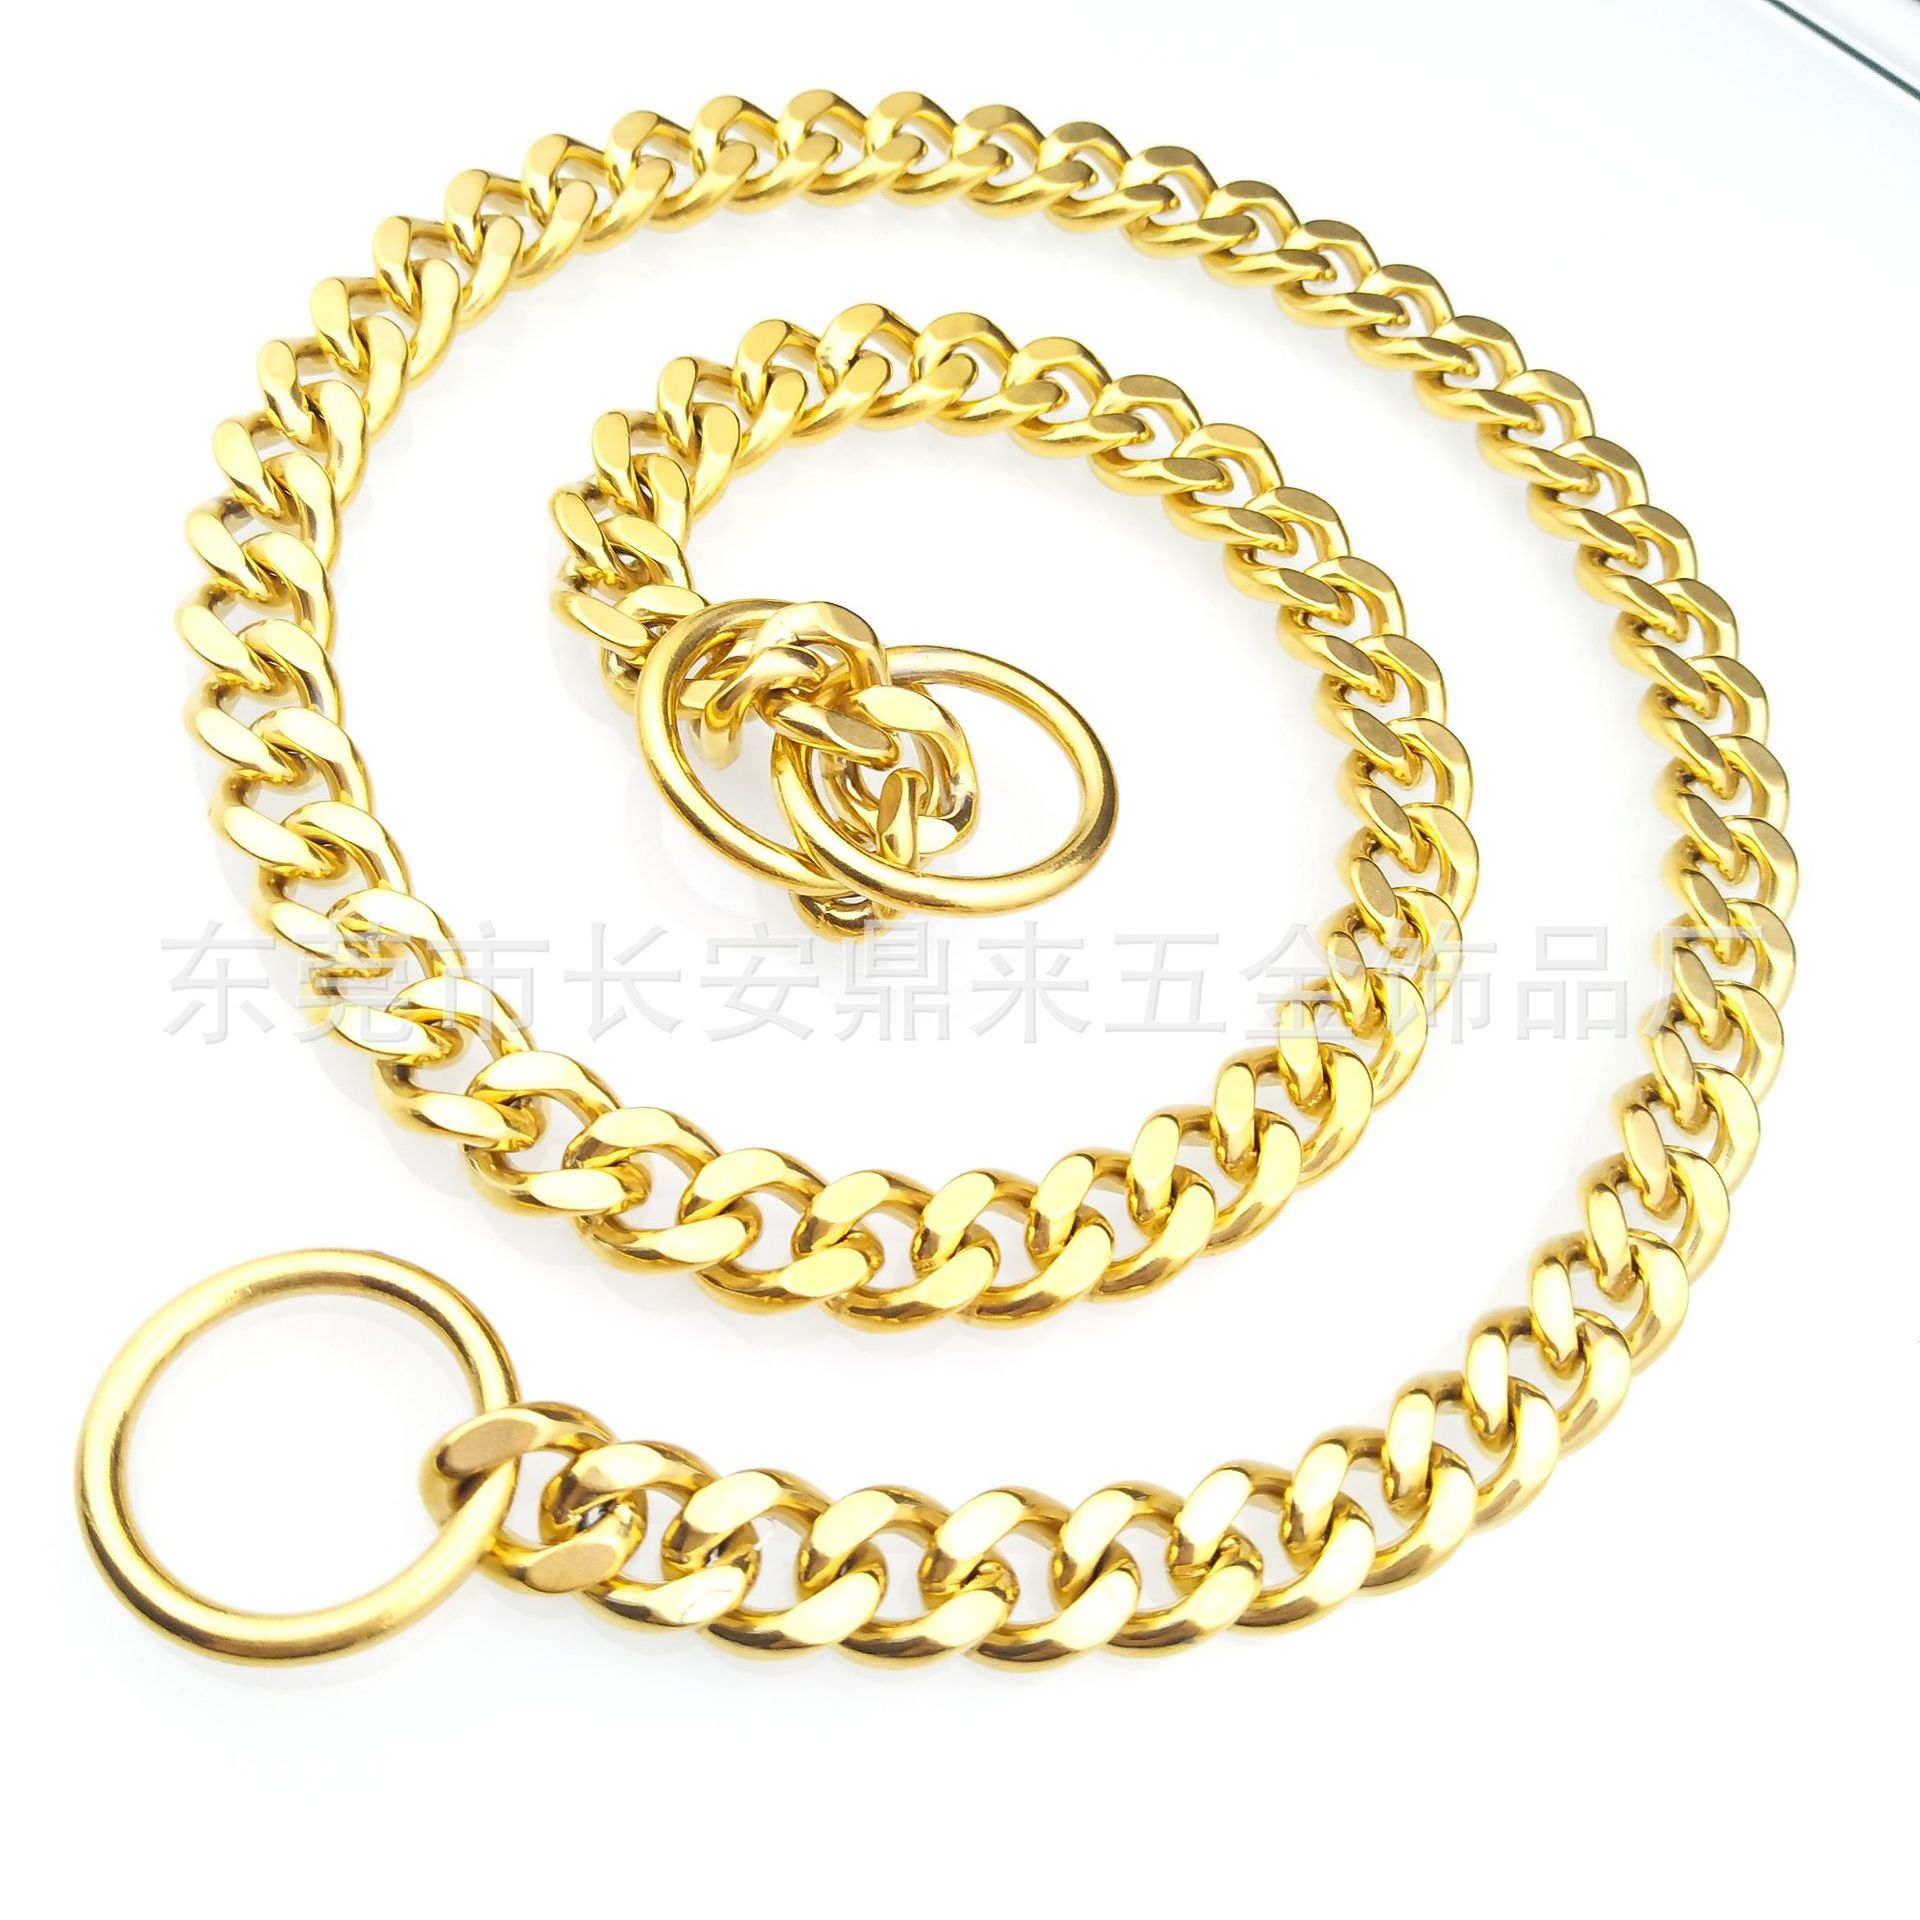 Hot Sales Pet Supplies Stainless Steel Dog Pendant Gold Neck Ring Automatic Telescopic P Pendant Two-sided Grinding